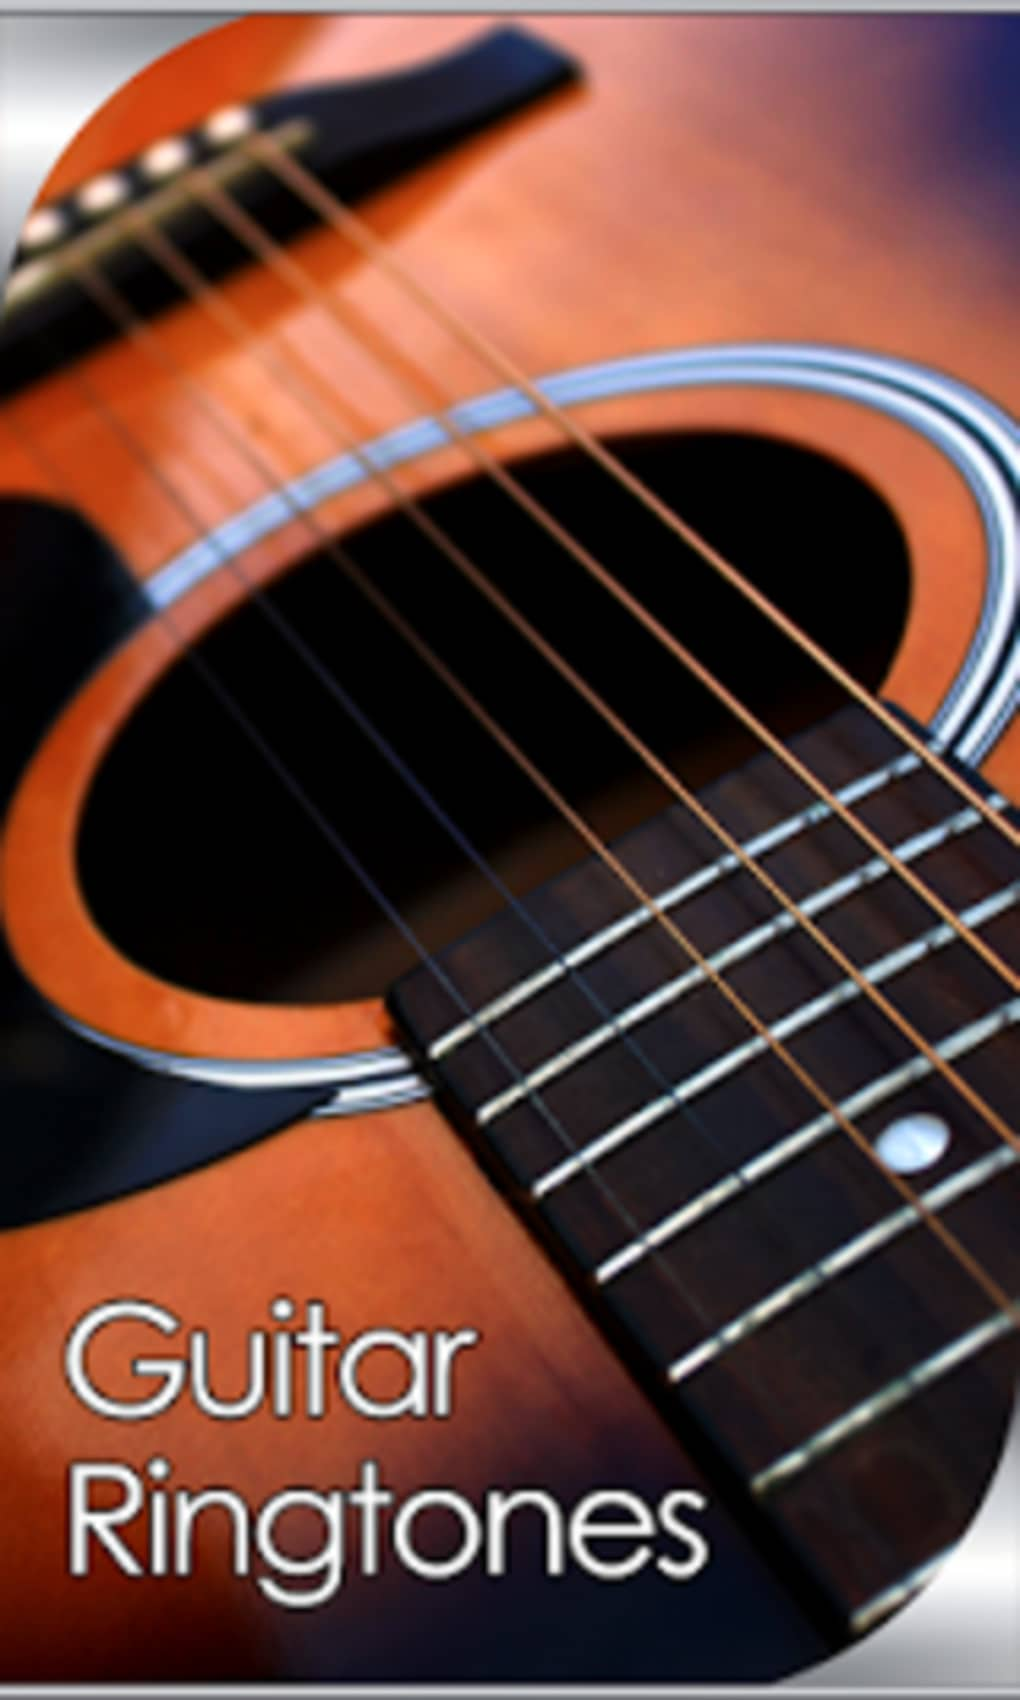 guitar ringtones for android download. Black Bedroom Furniture Sets. Home Design Ideas